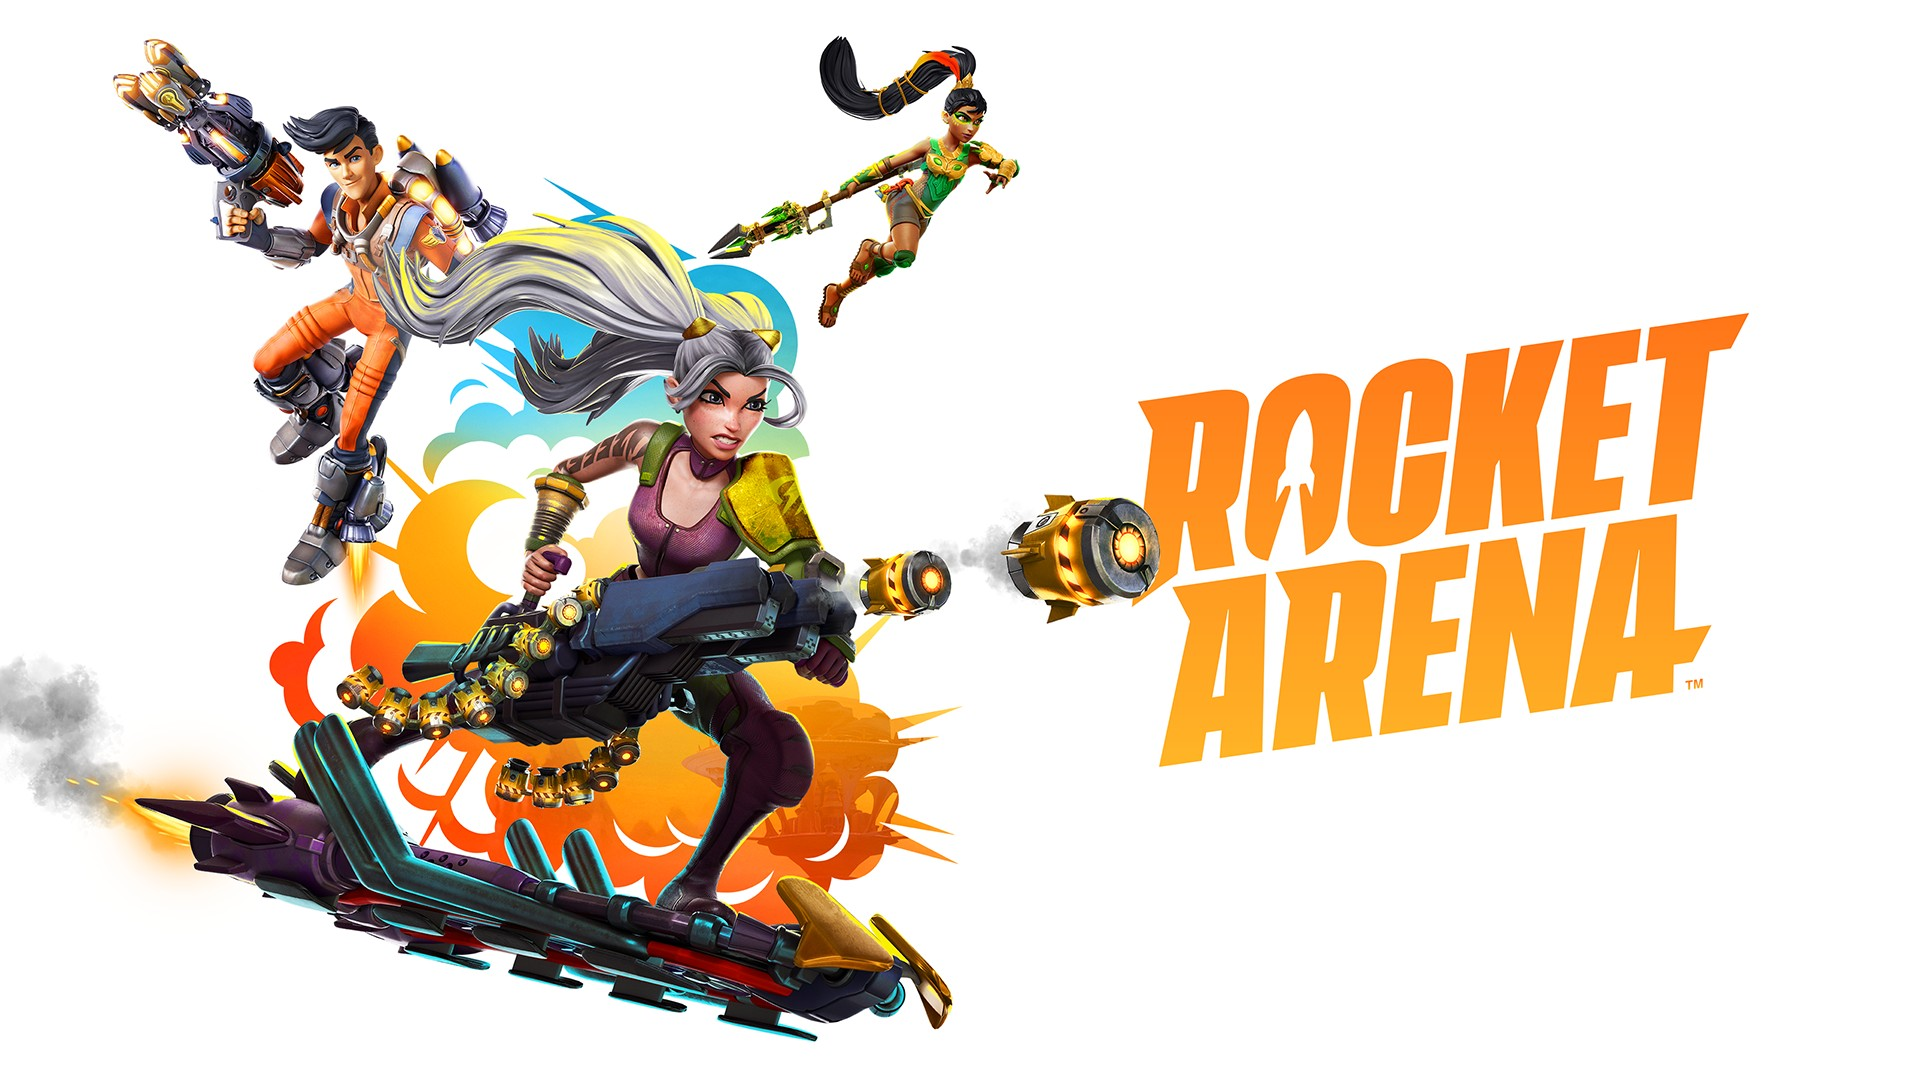 Video For Launch into the Fray with Rocket Arena on Xbox One